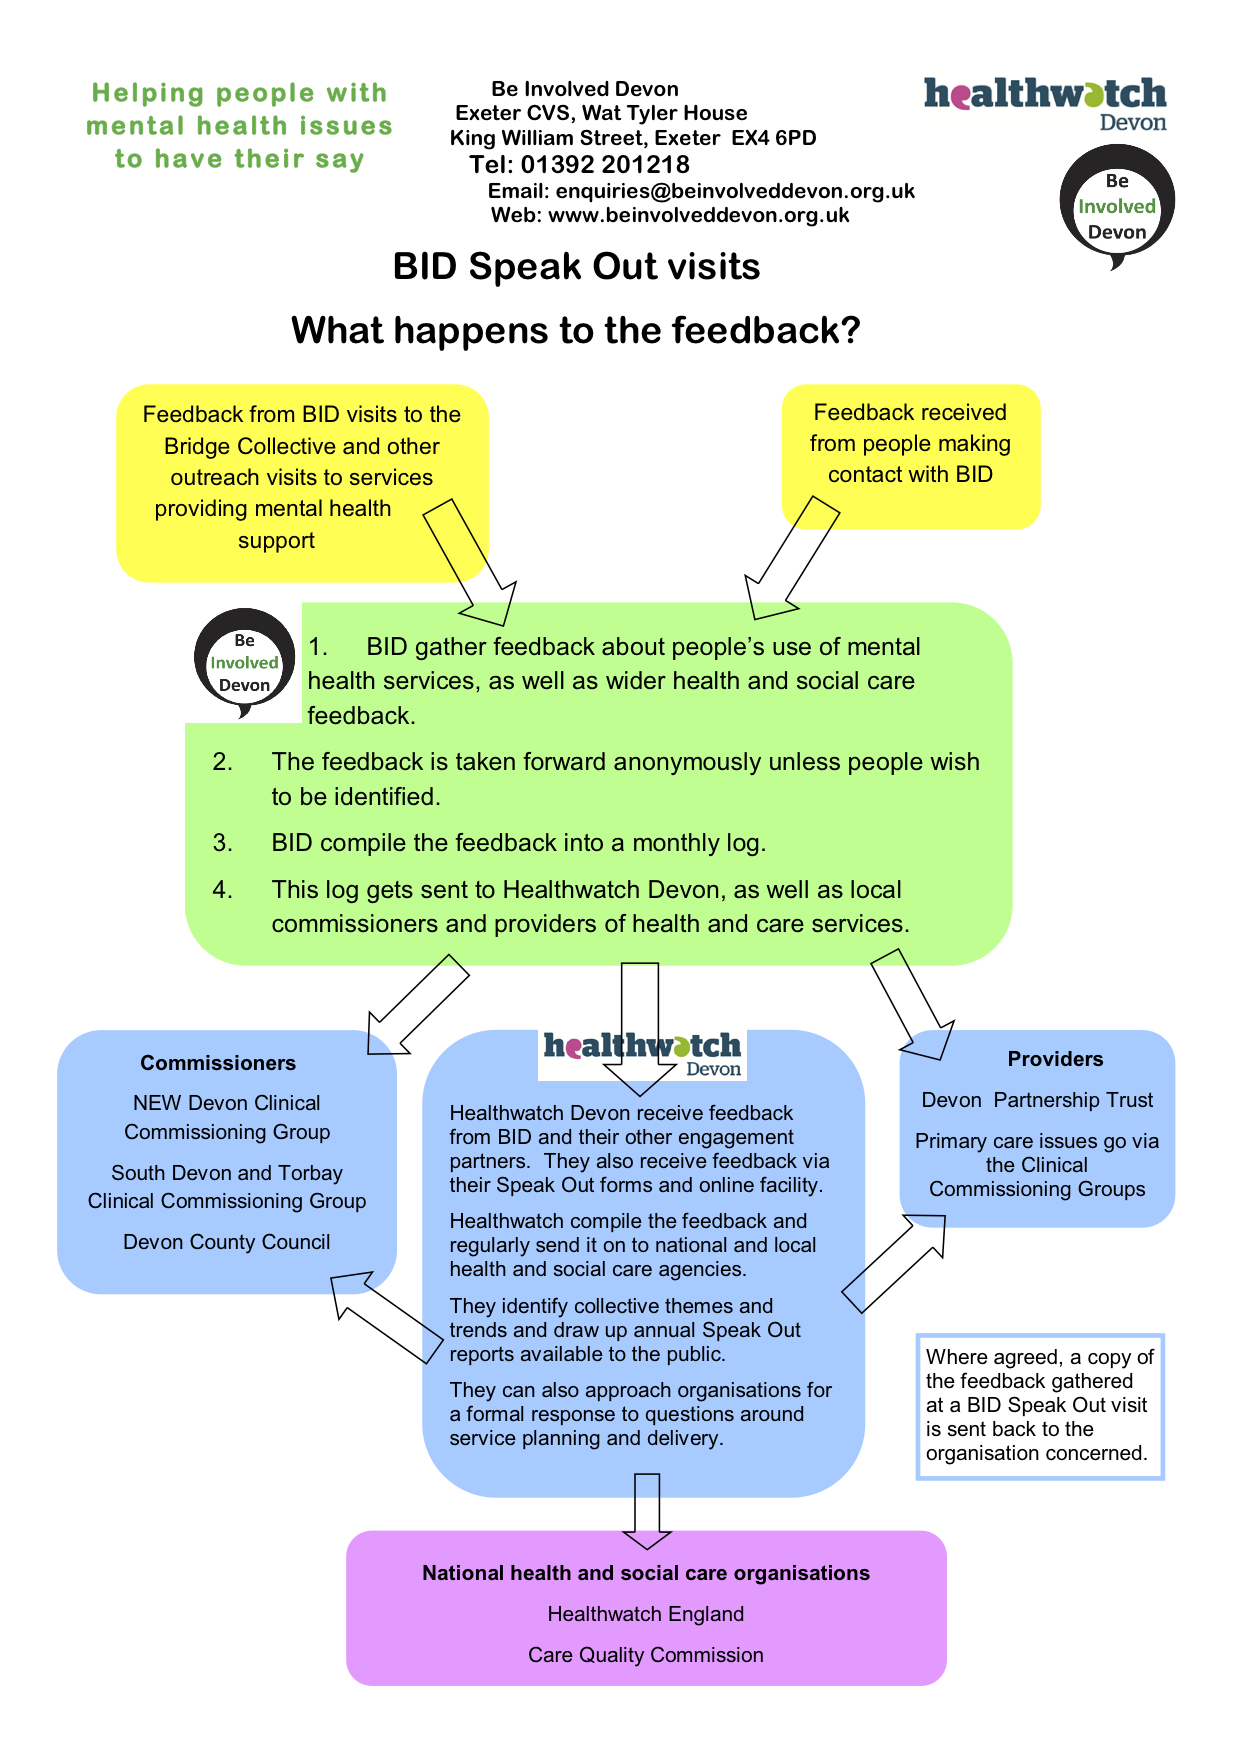 BID speak out visits - what happens to the feedback